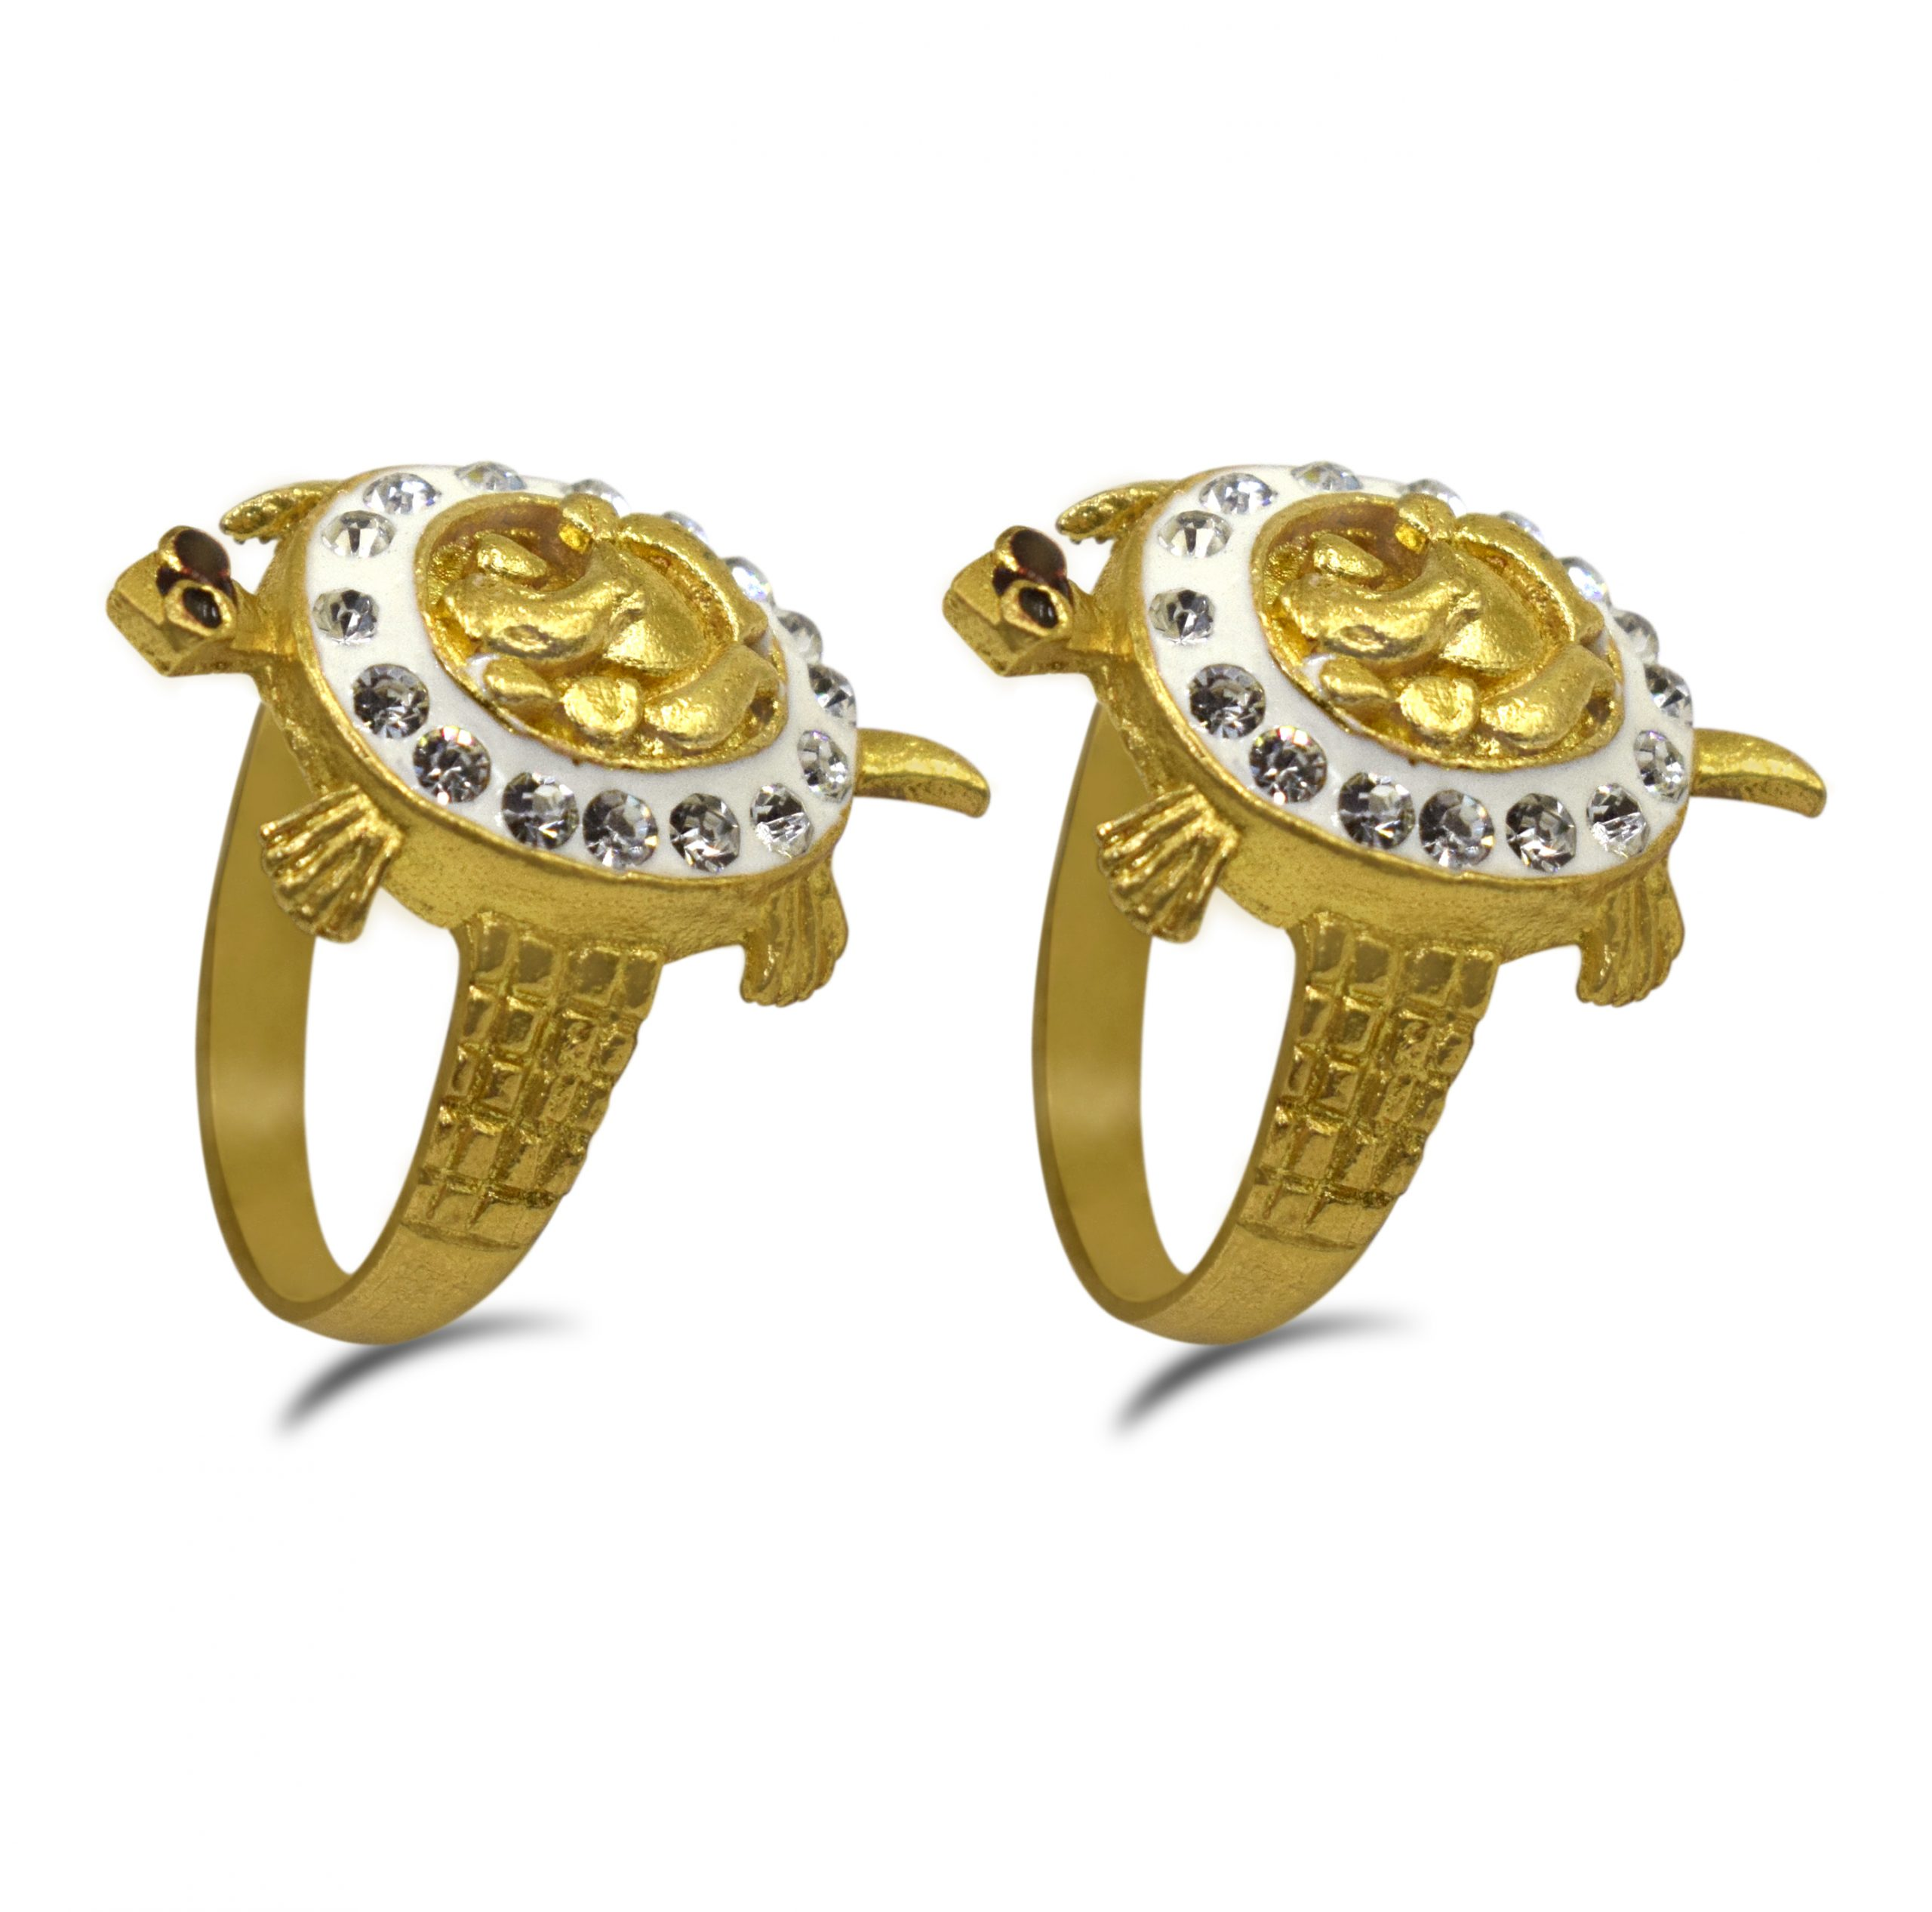 Buy Combo of Ganesh Meru Turtle(Kachua) Ring